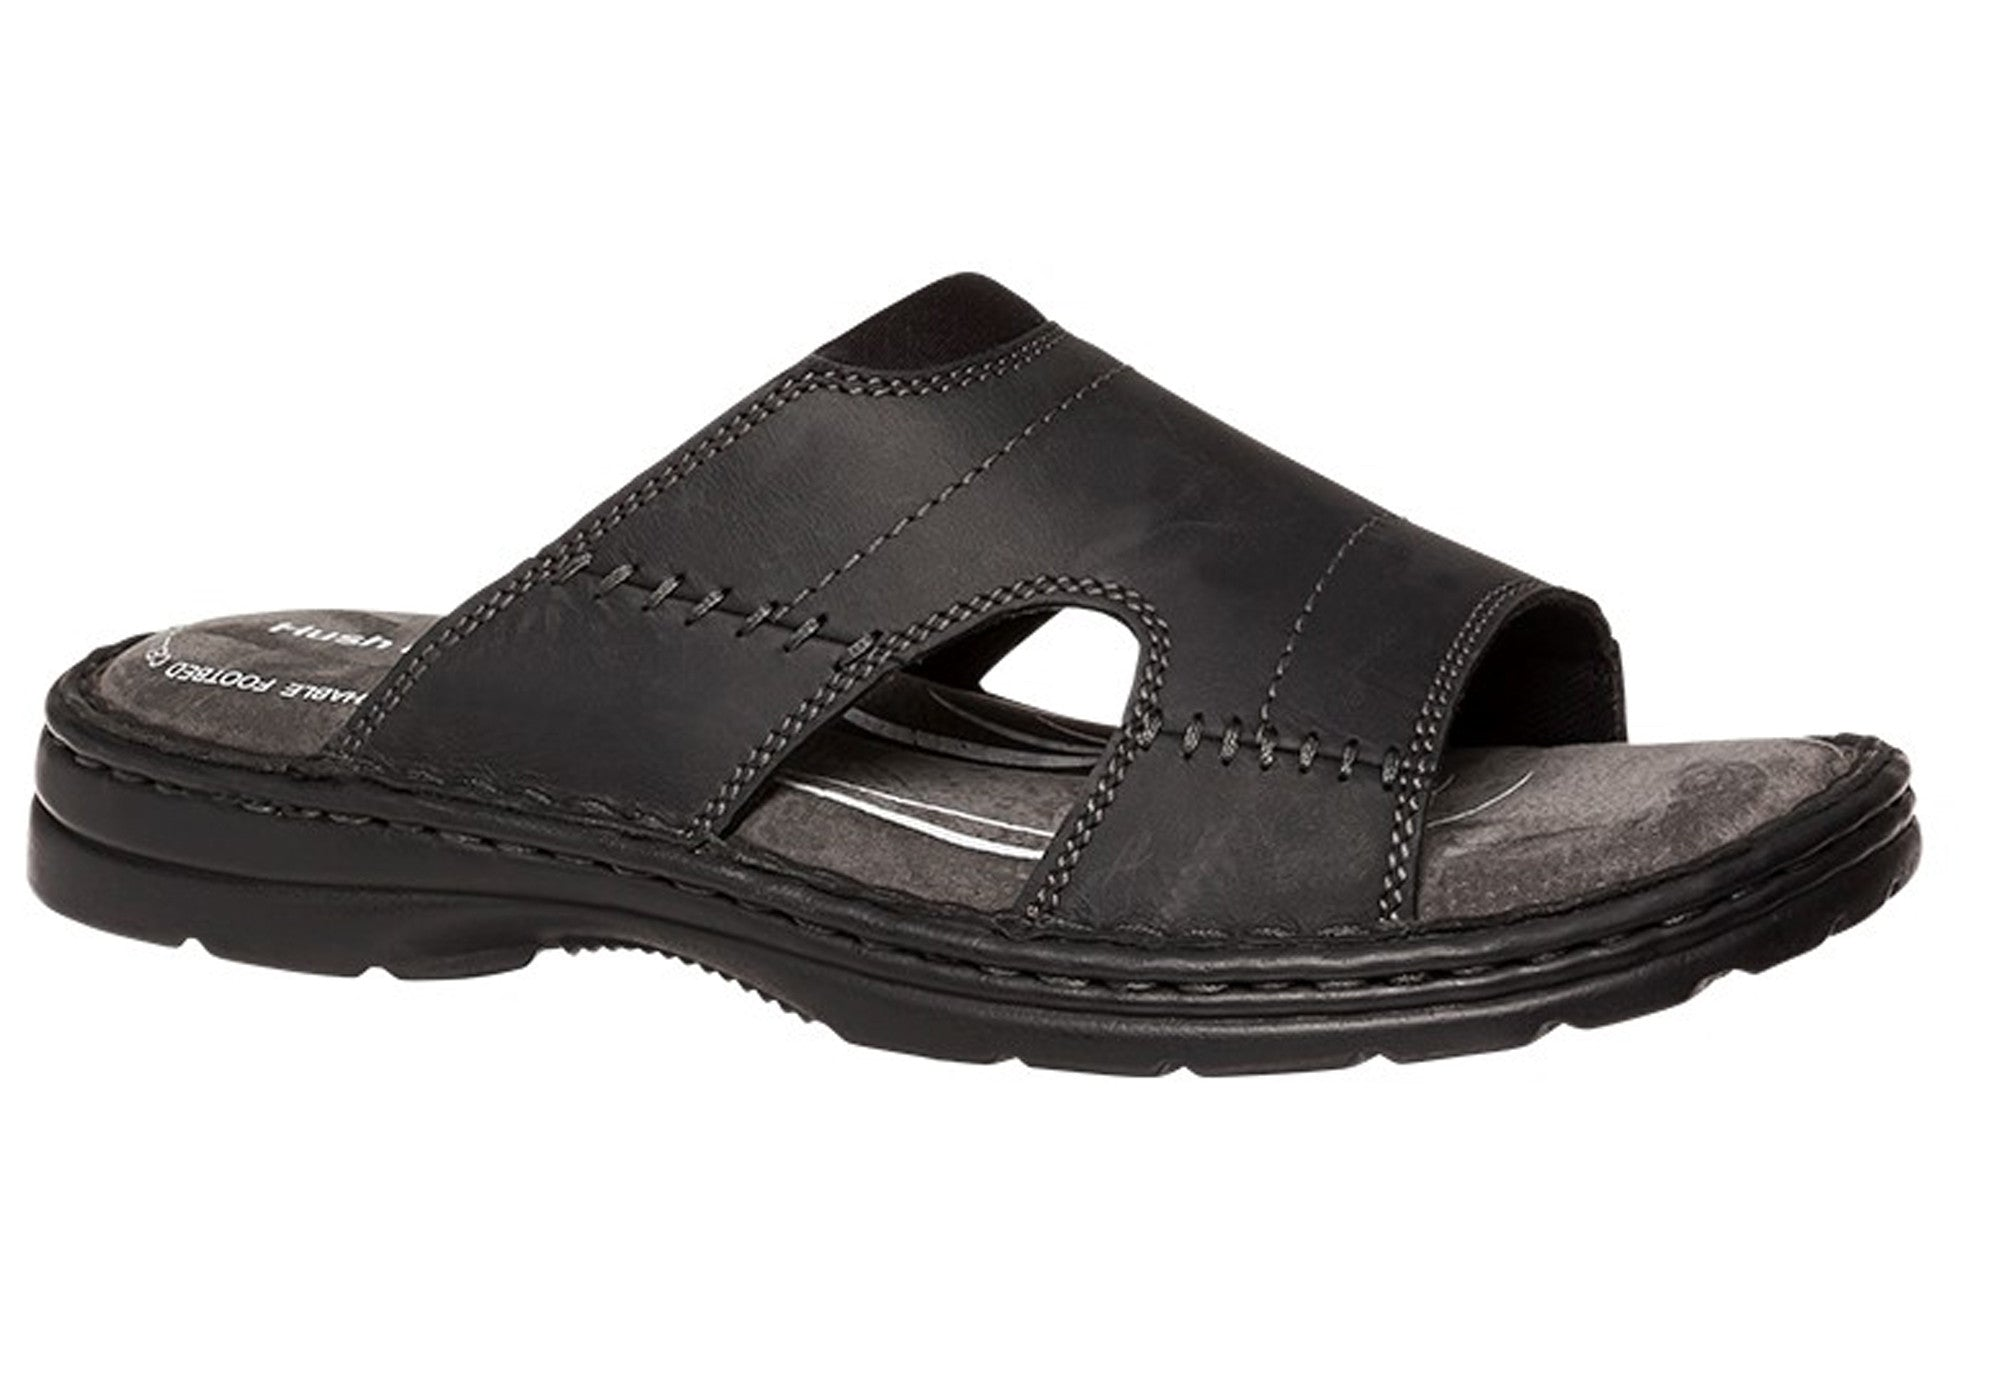 Hush Puppies Mens Size 8 Black Leather Sandles Brand New